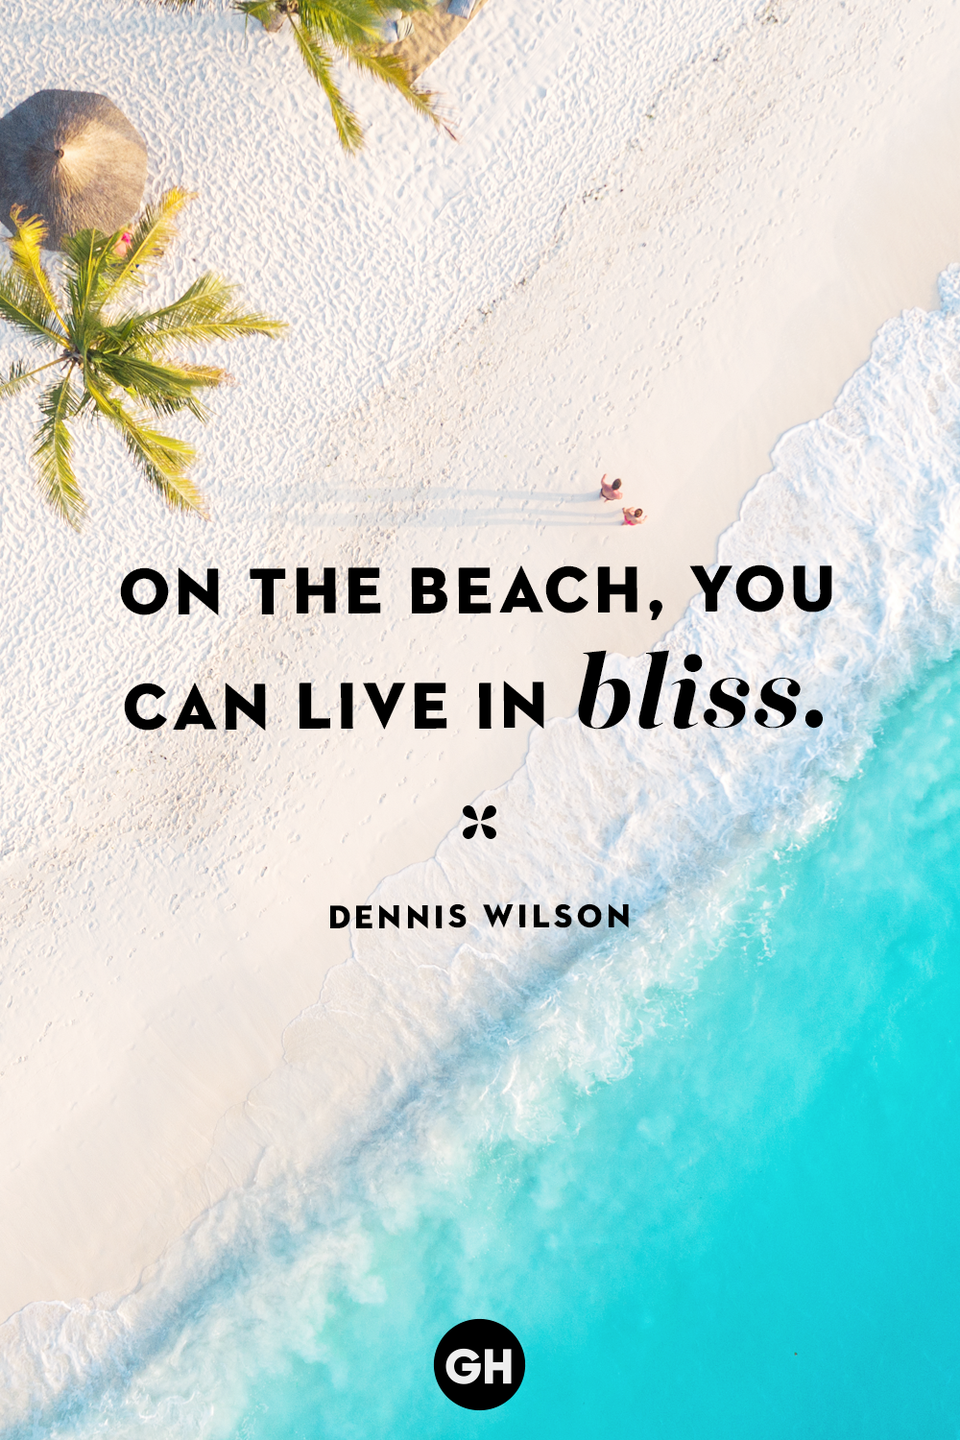 <p>On the beach, you can live in bliss.</p>